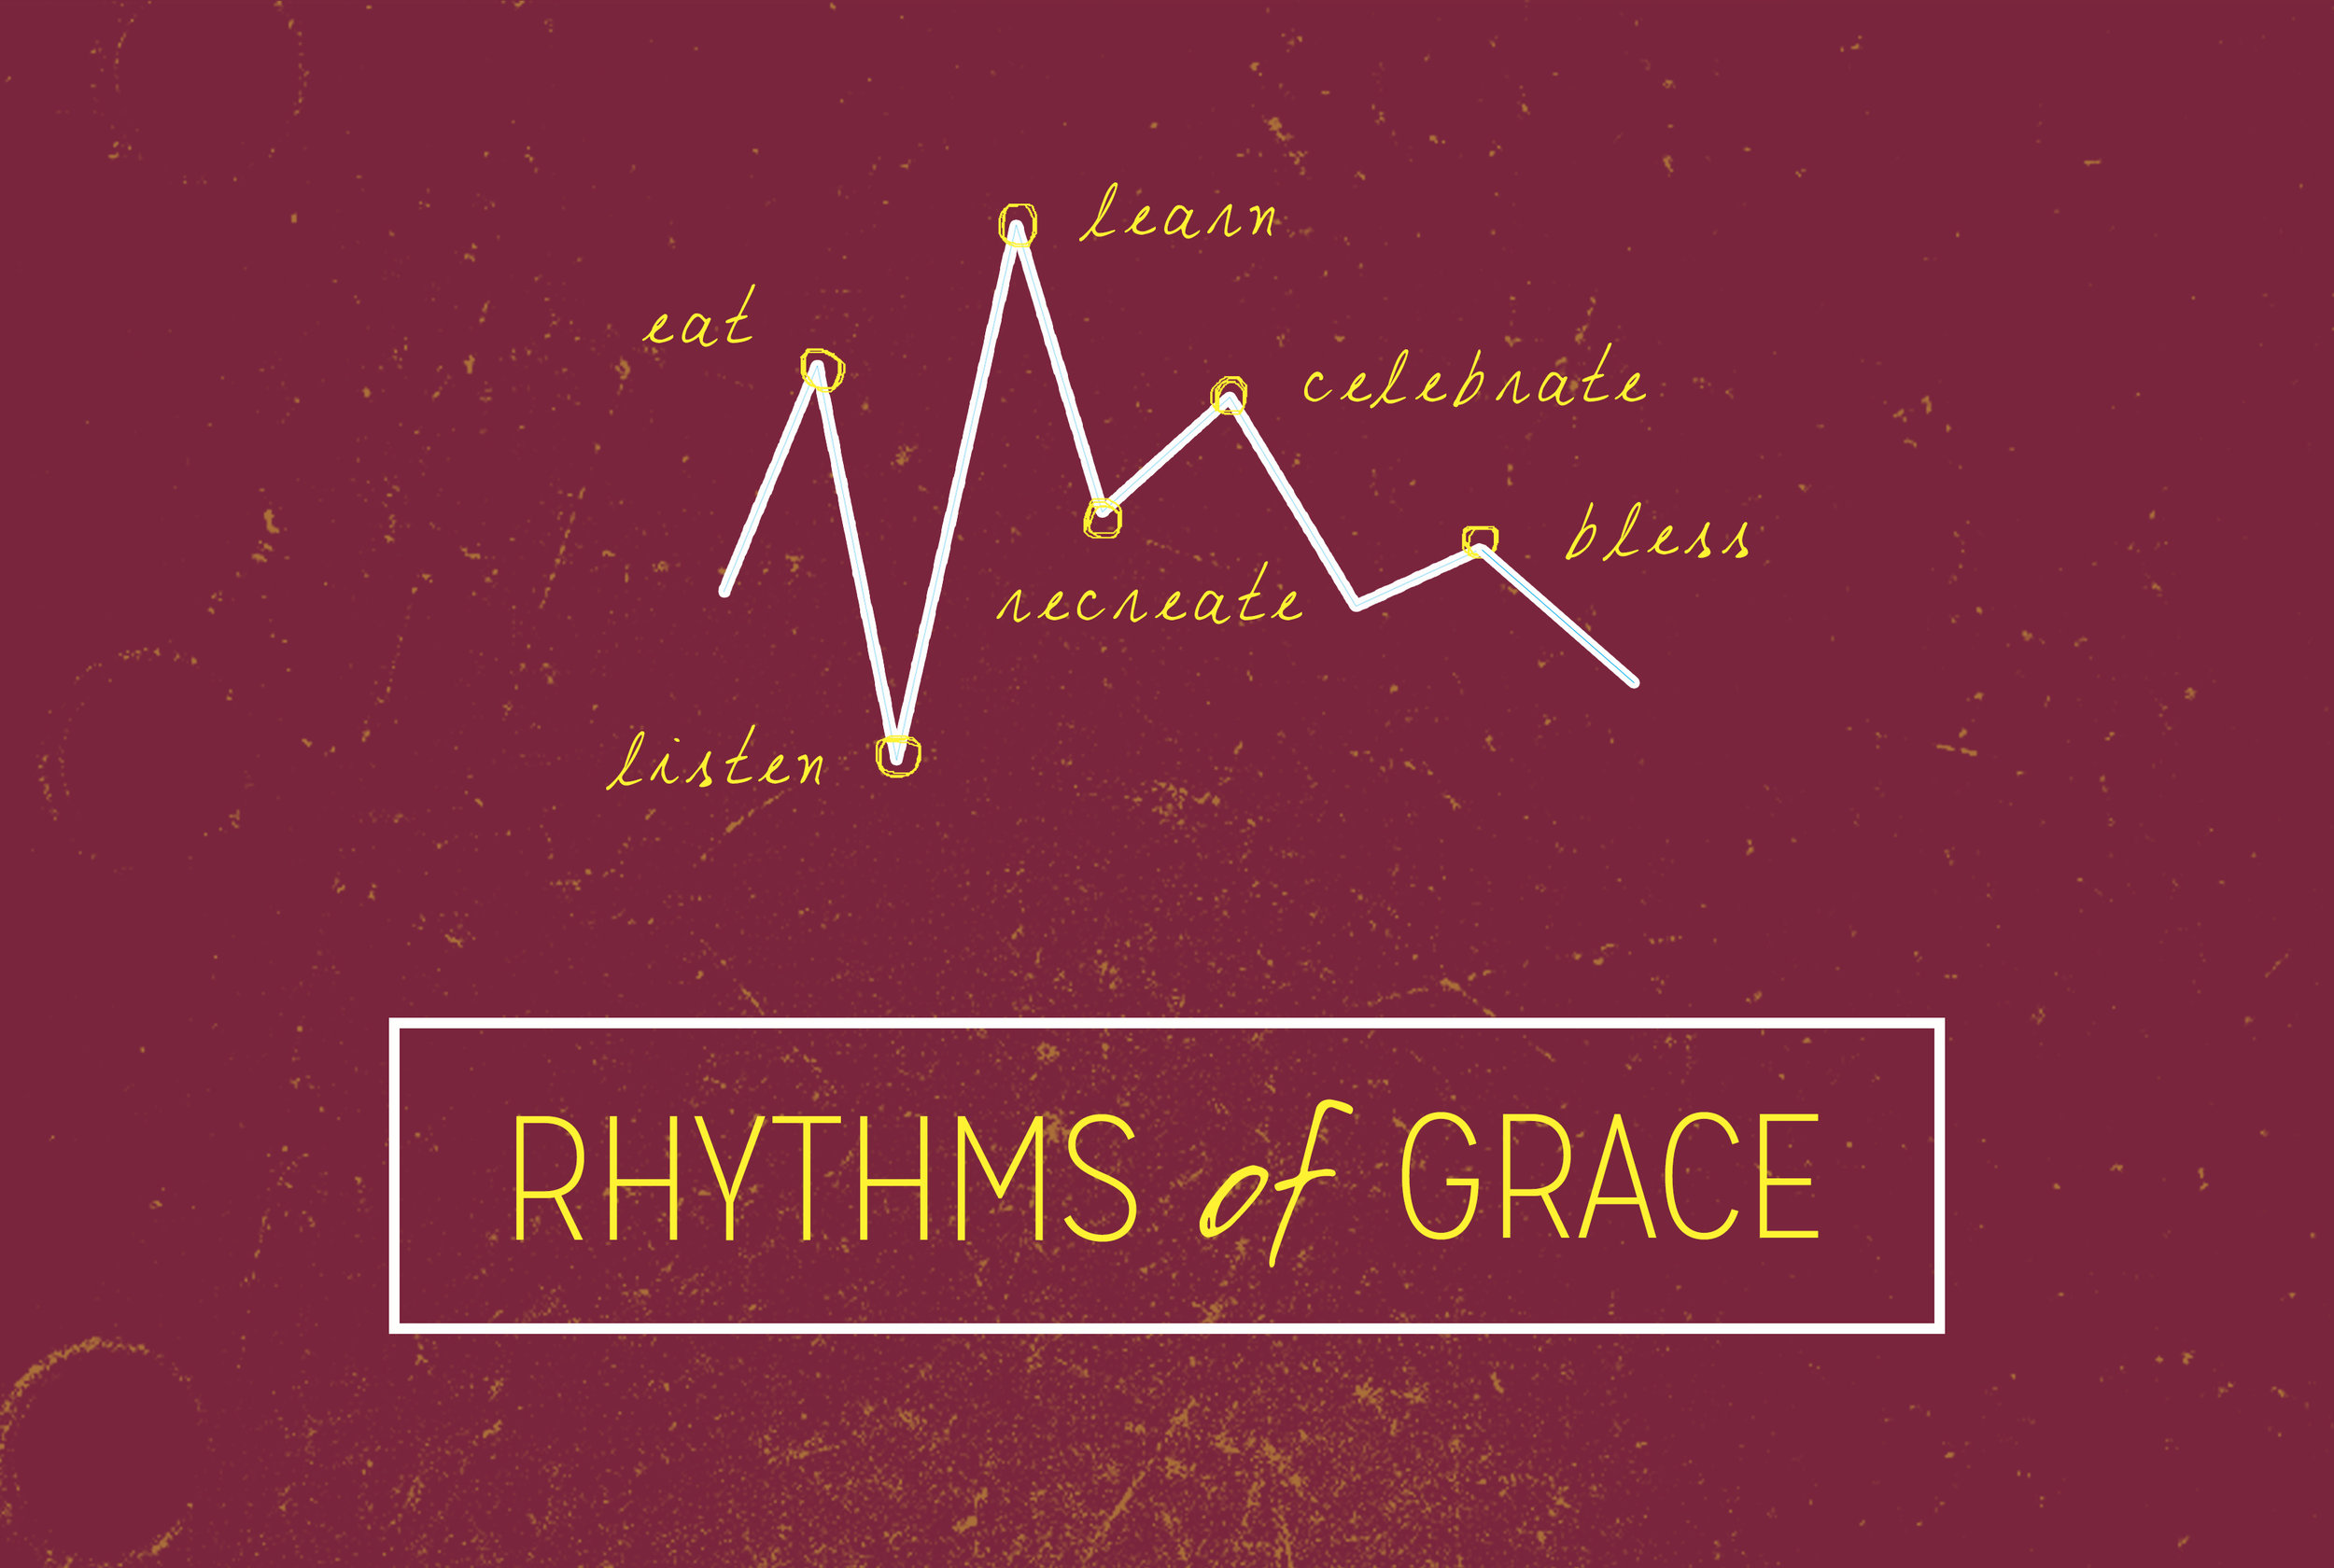 Rhythms of Grace Sermon Series - Want to know more about our rhythms, check out our sermon series.